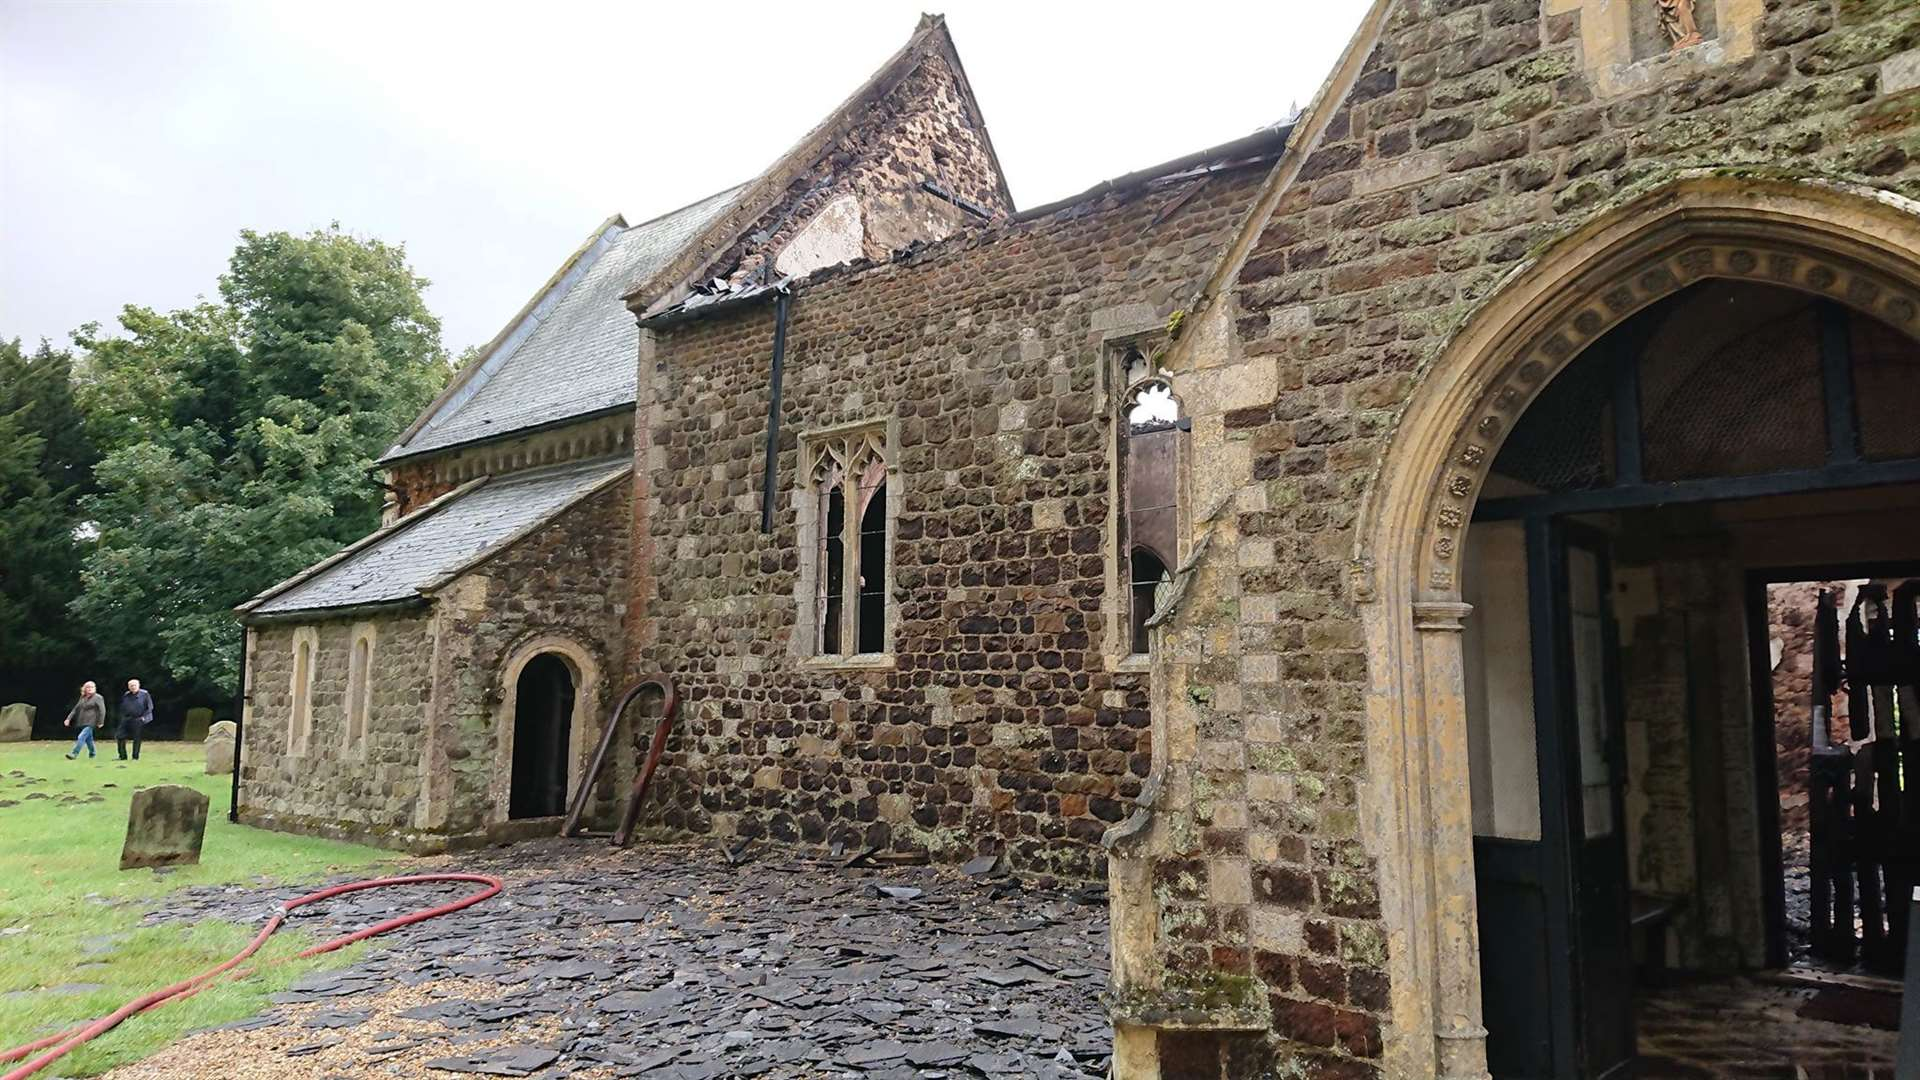 The damage to the church was considerable